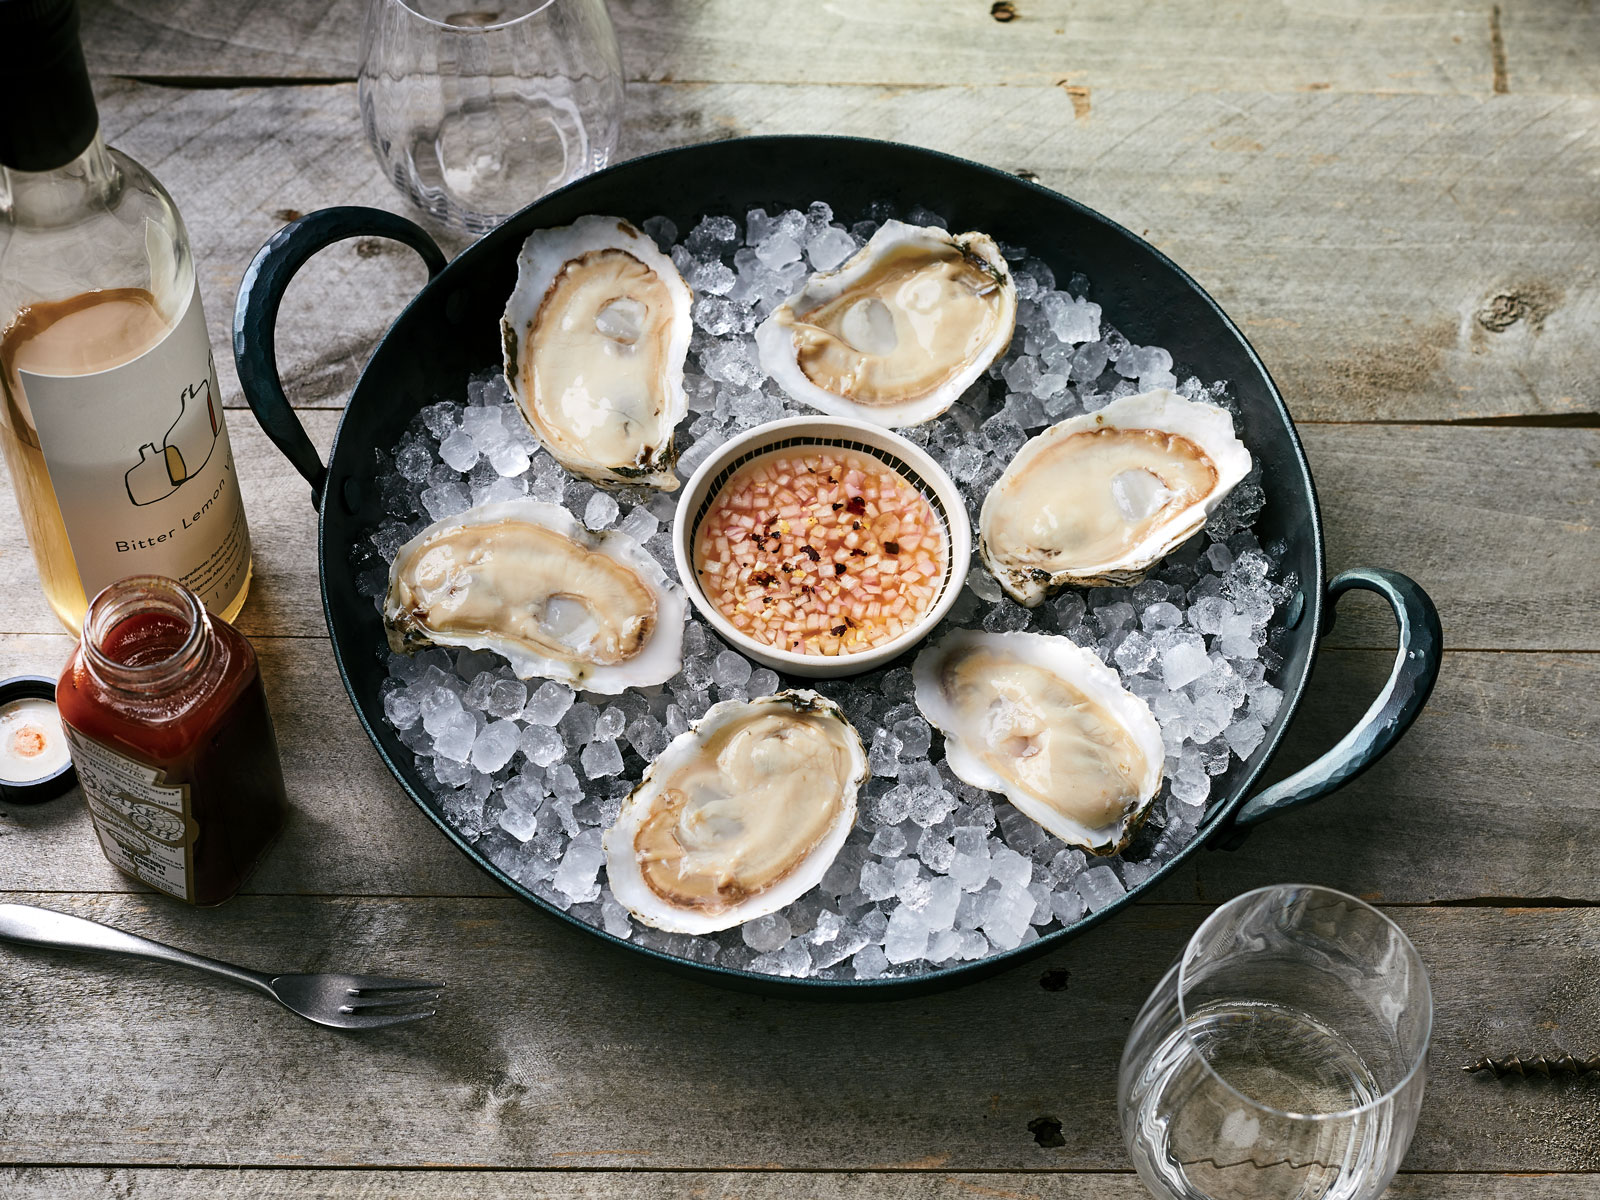 Iced Oysters with Bitter Lemon Vinaigrette